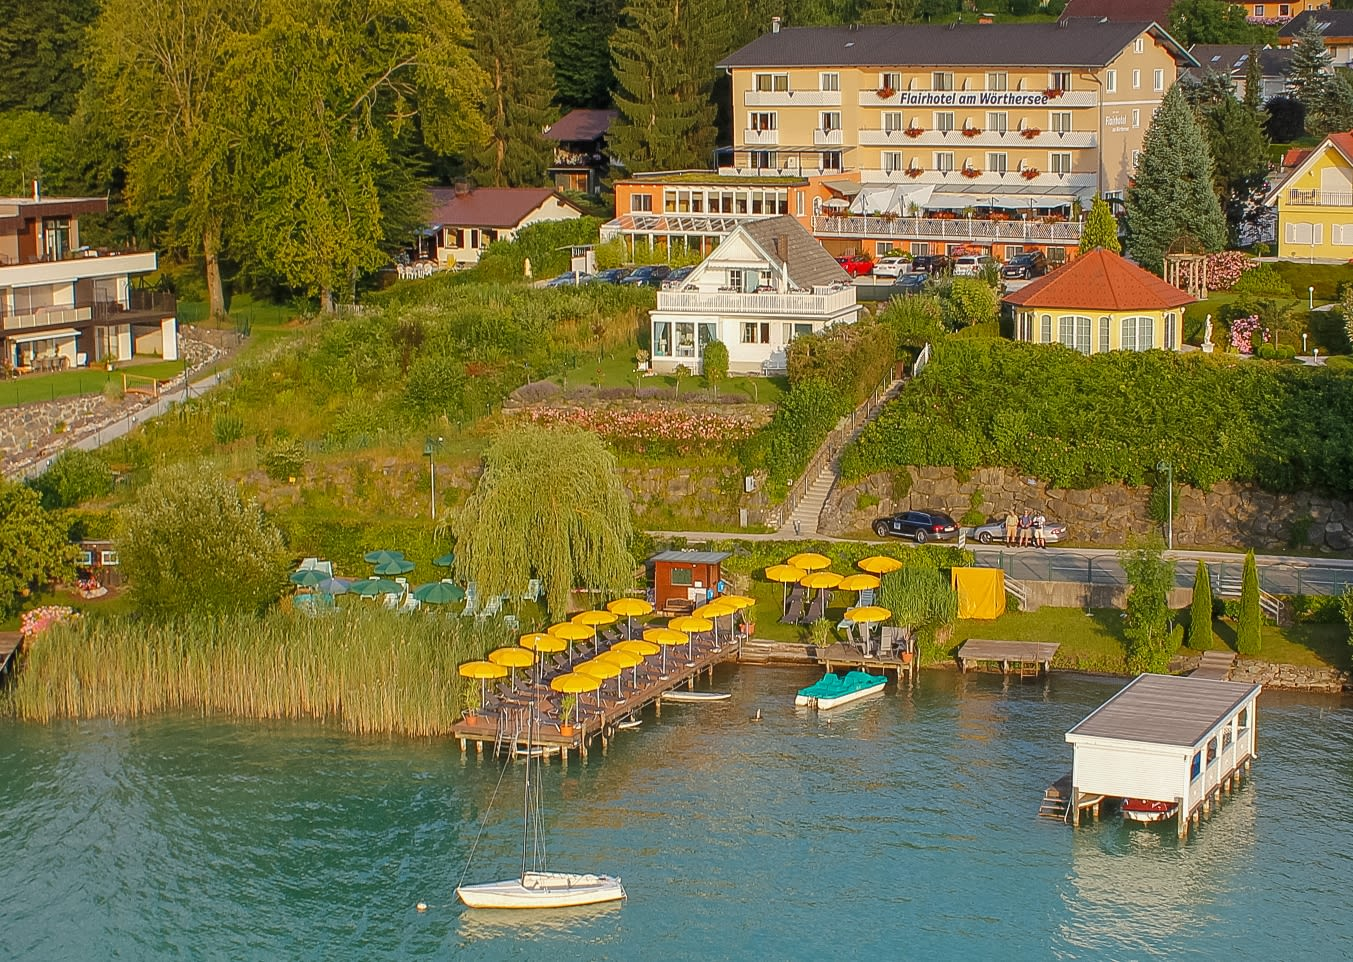 Flair Hotel am Wörthersee